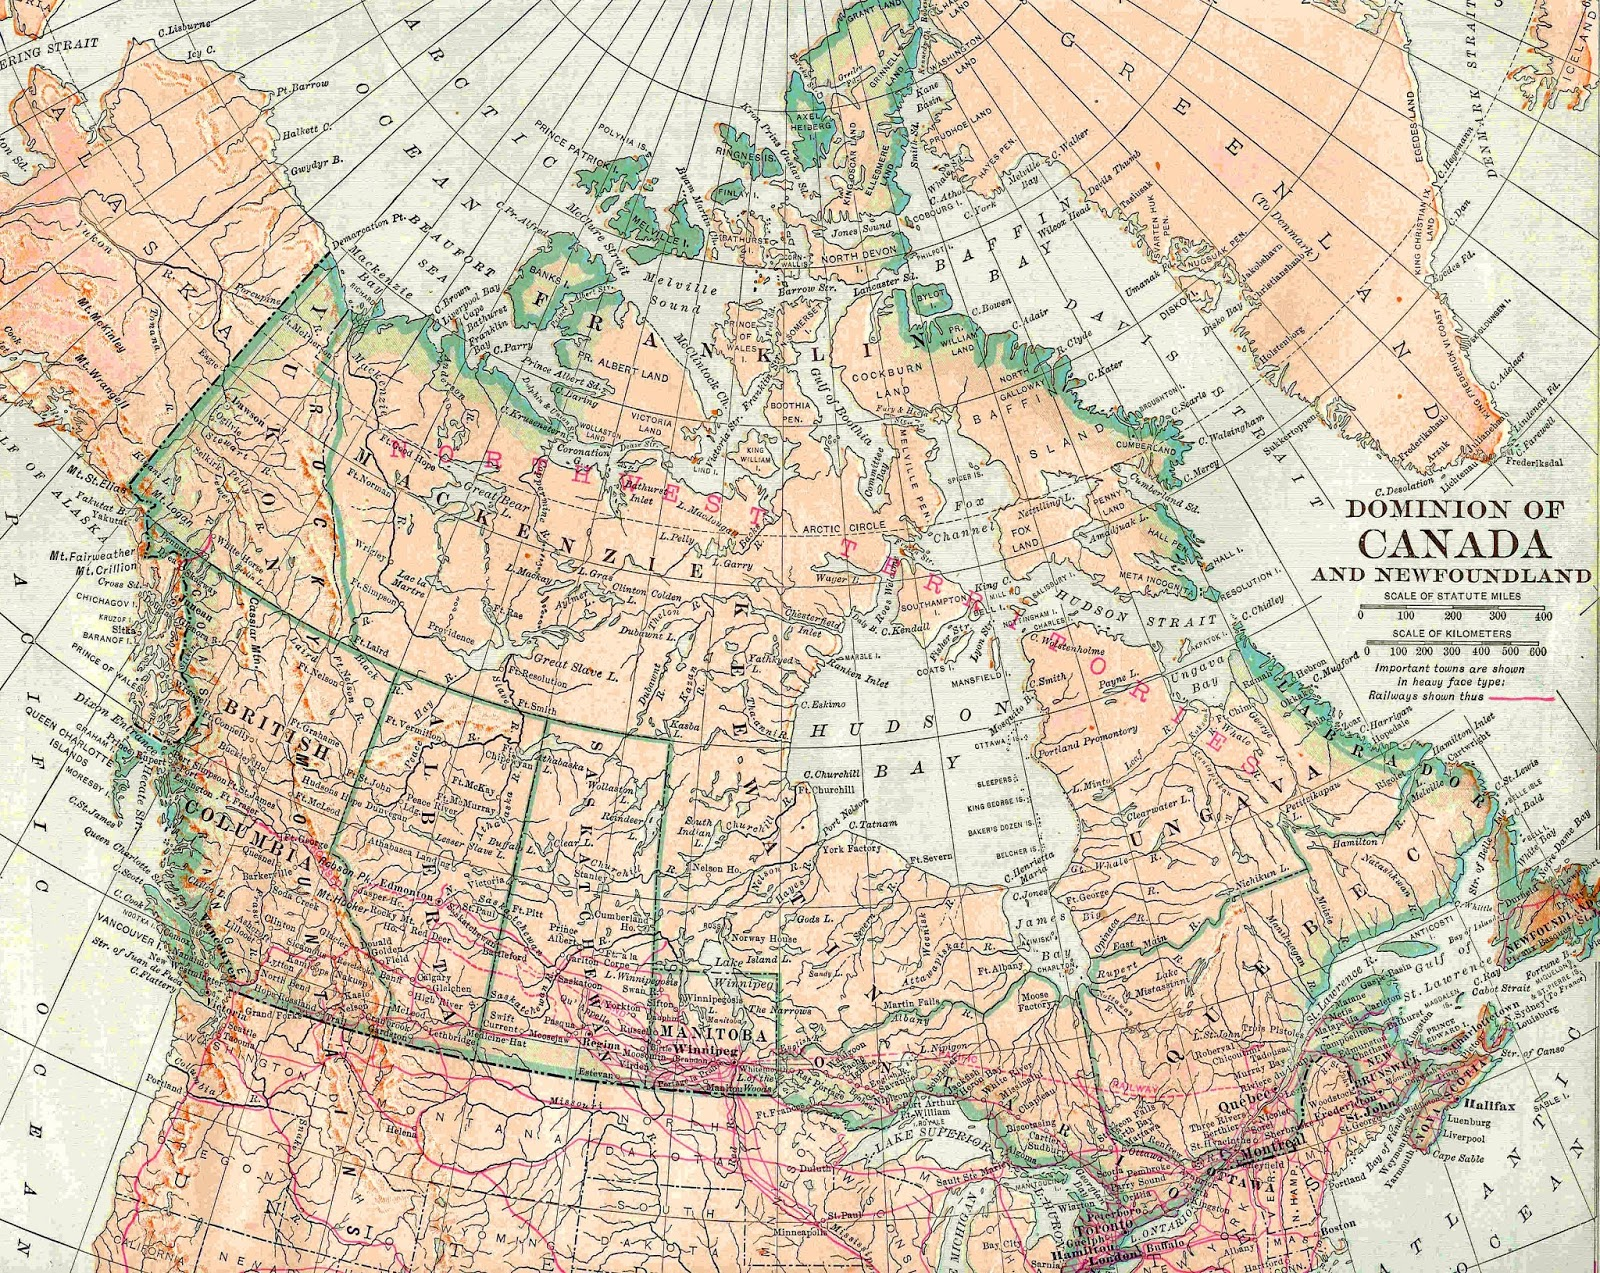 Antique Images: Vintage Map Background: 1913 Map Graphic of Canada